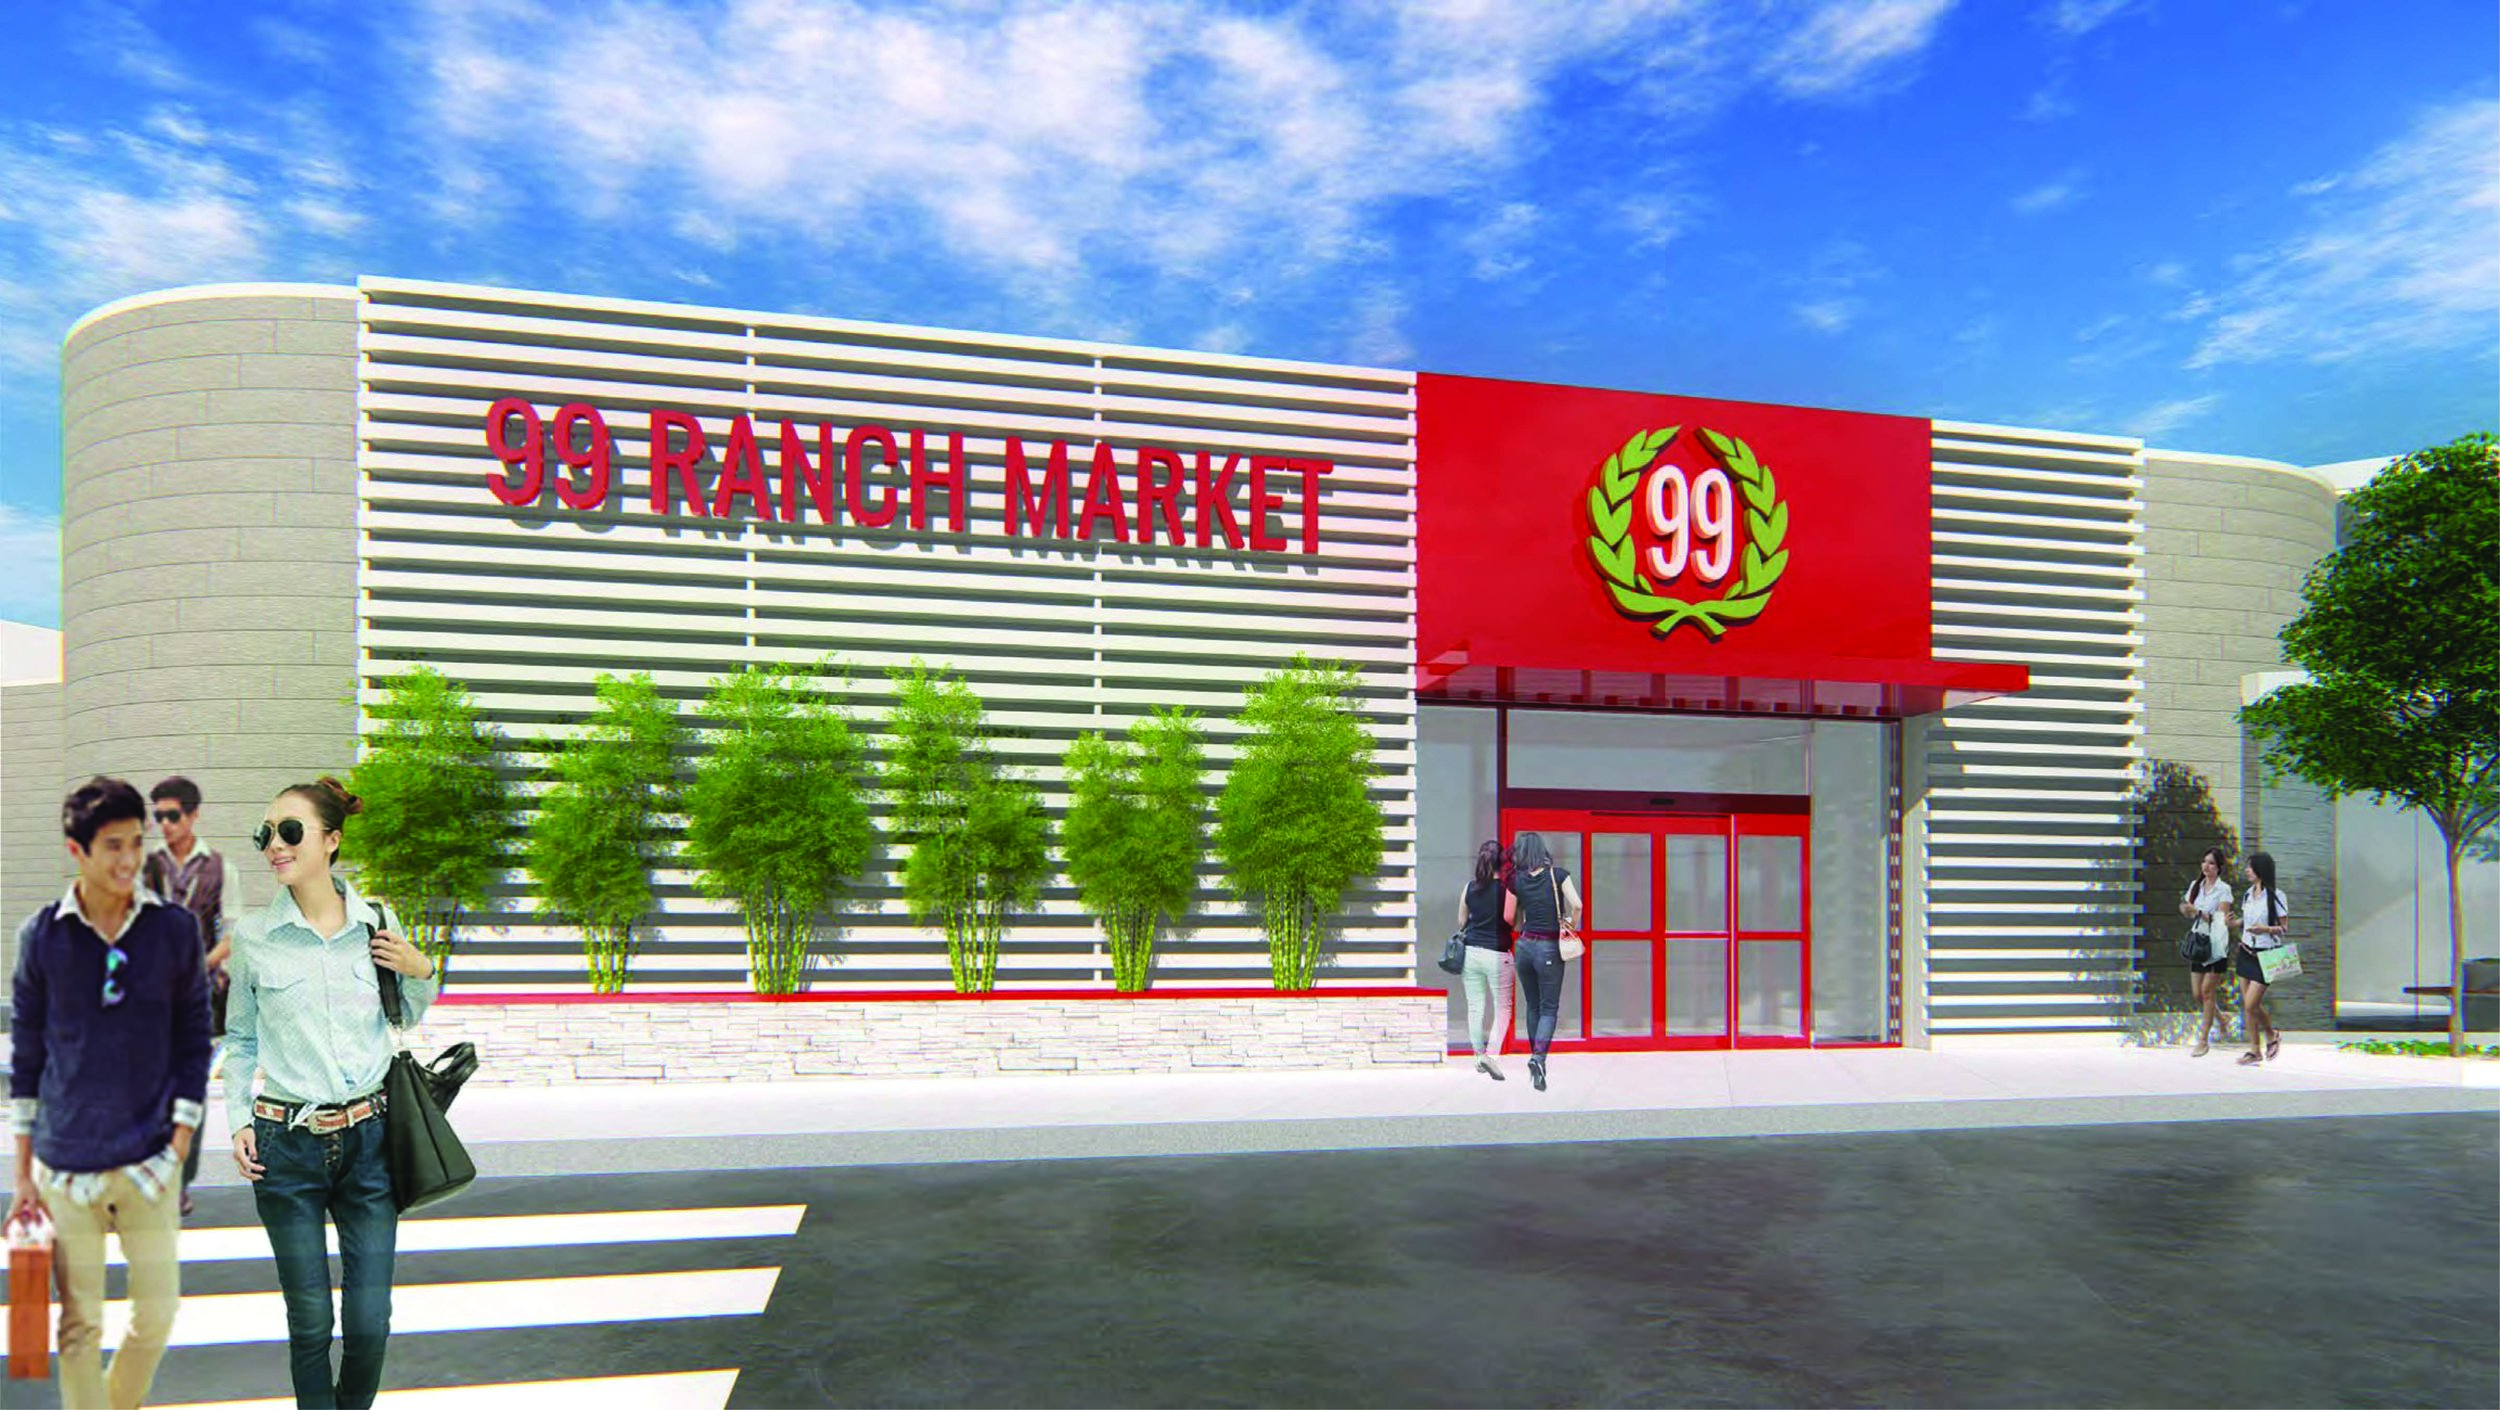 Leading Asian supermarket 99 Ranch Market will anchor The Shops at Hilltop's expanded tenant collection.